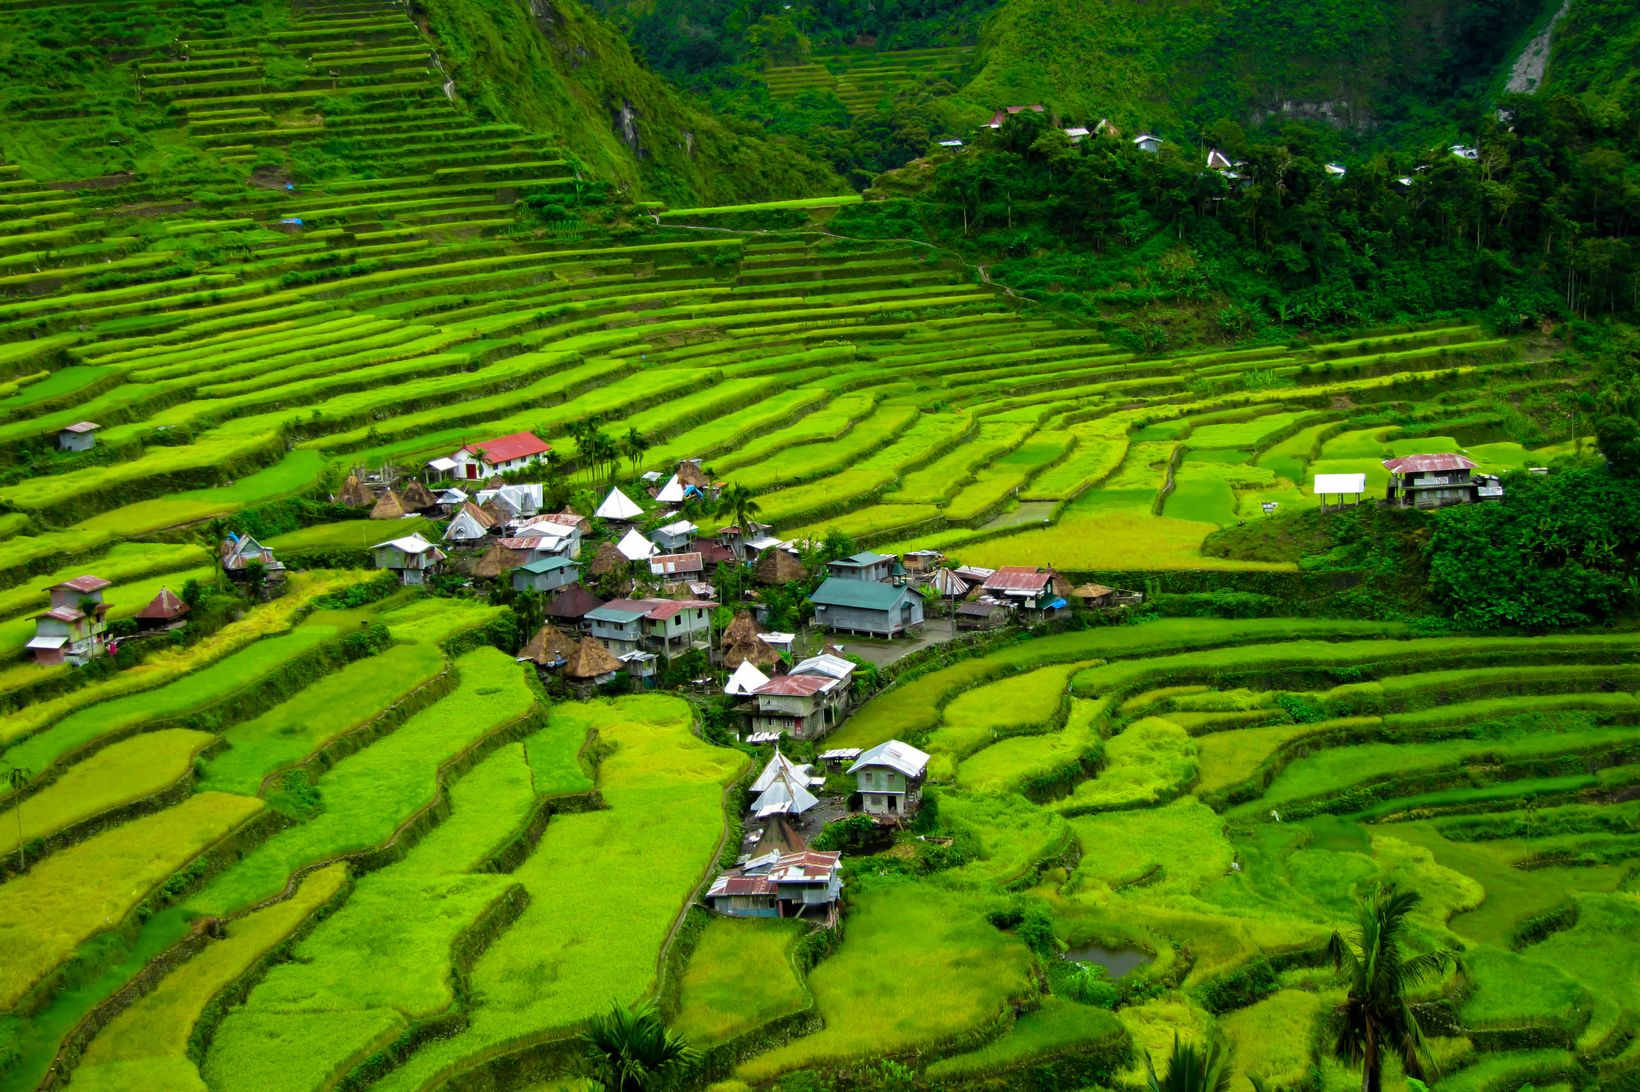 A small village built on green rice terraces carved on a mountainside